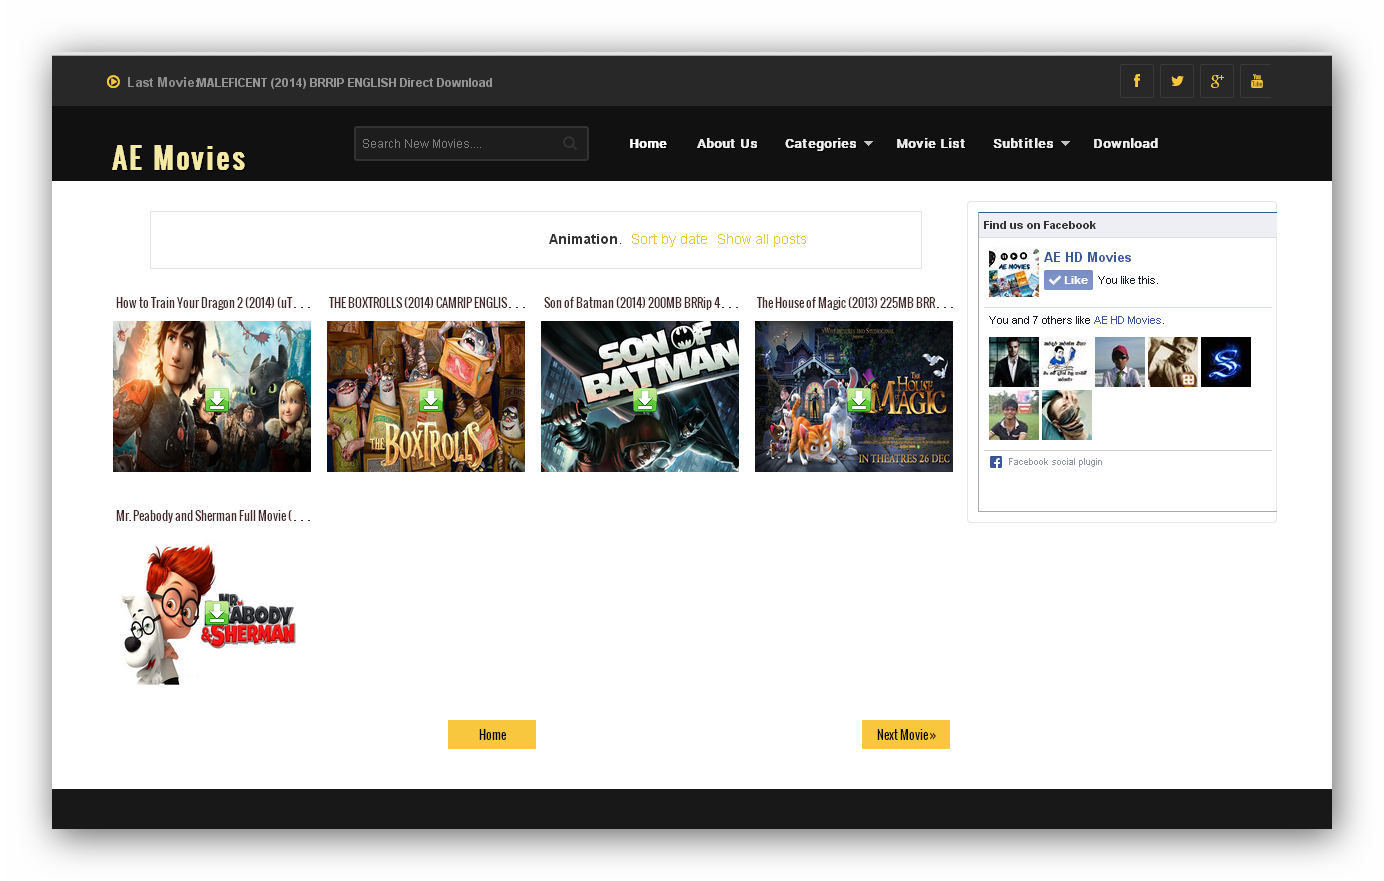 small size hd movies free download